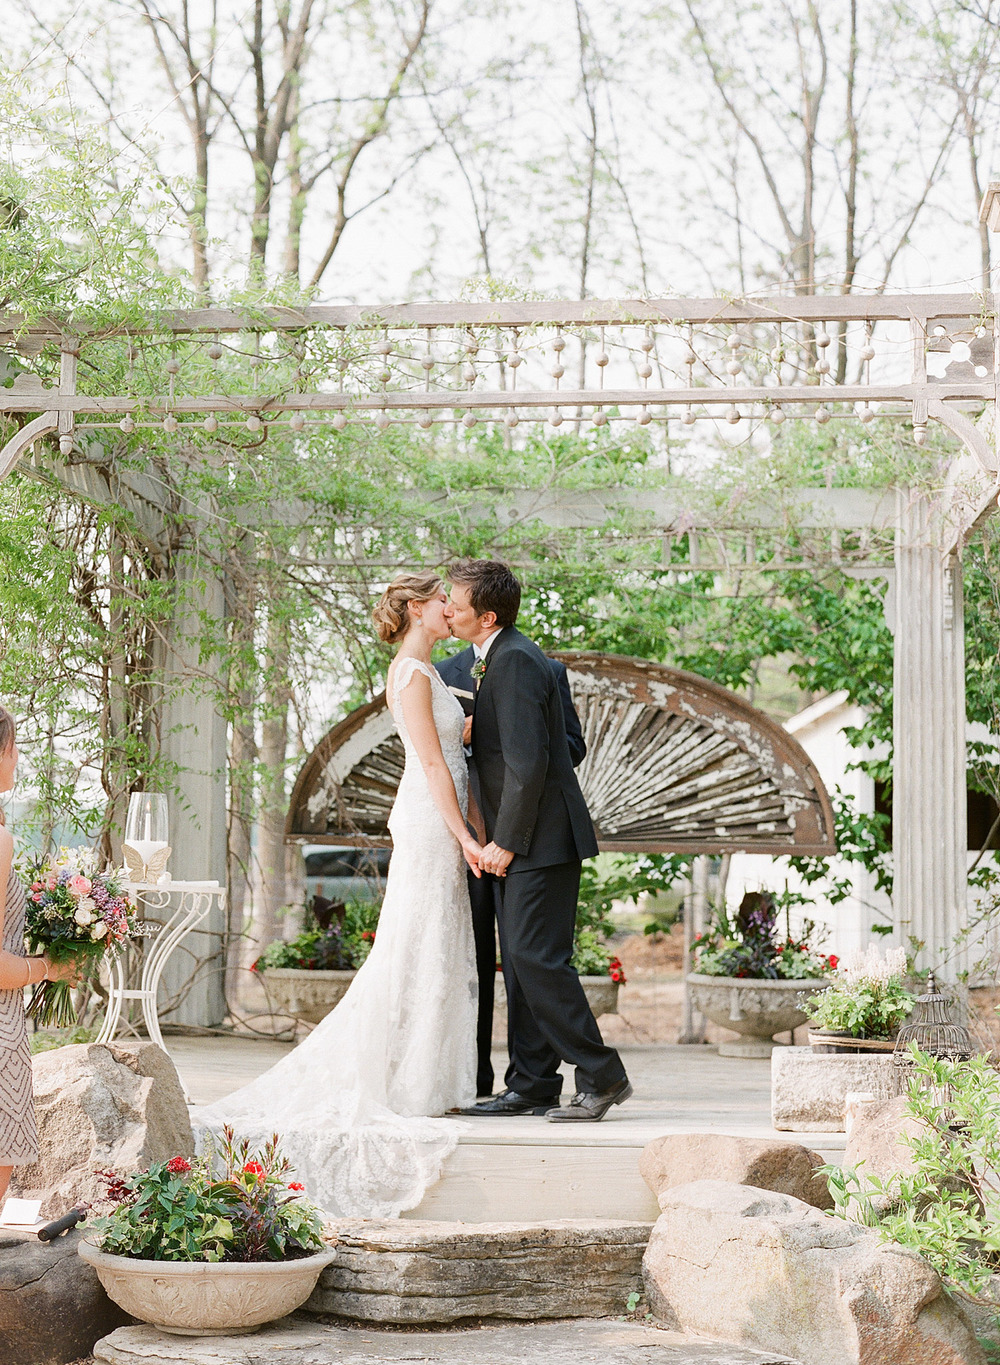 bride and groom kiss at the ceremony at this springtime wedding at Northwind Perennial Garden - a beautiful wisconsin wedding venue - while Destination wedding photographer Lexia Frank Photographs this wedding on film